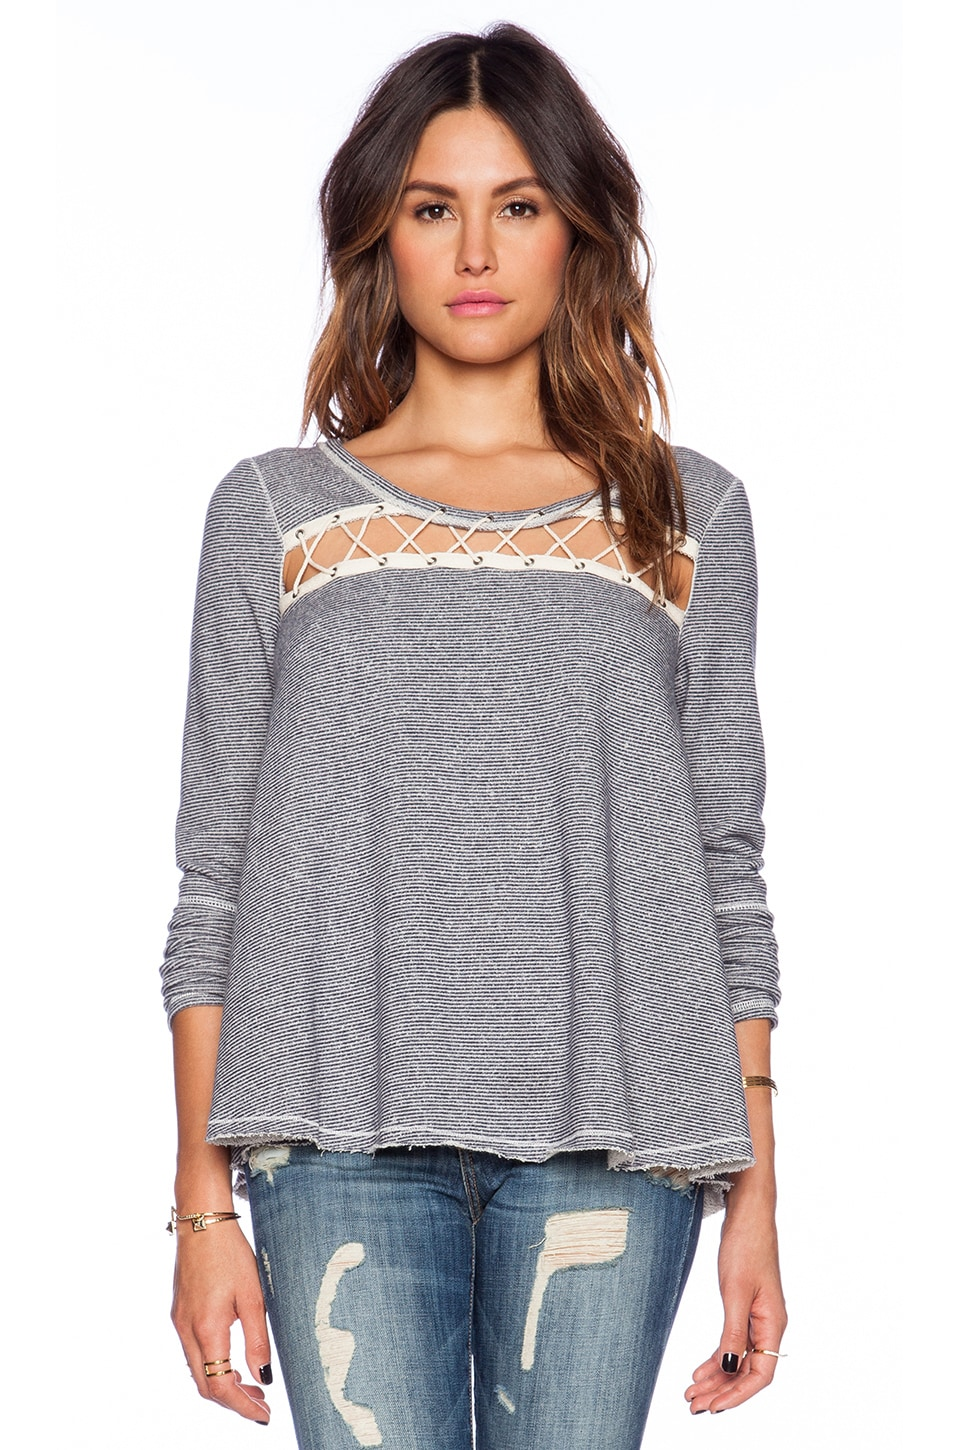 Free People Lacey Love Pullover in Indigo Combo